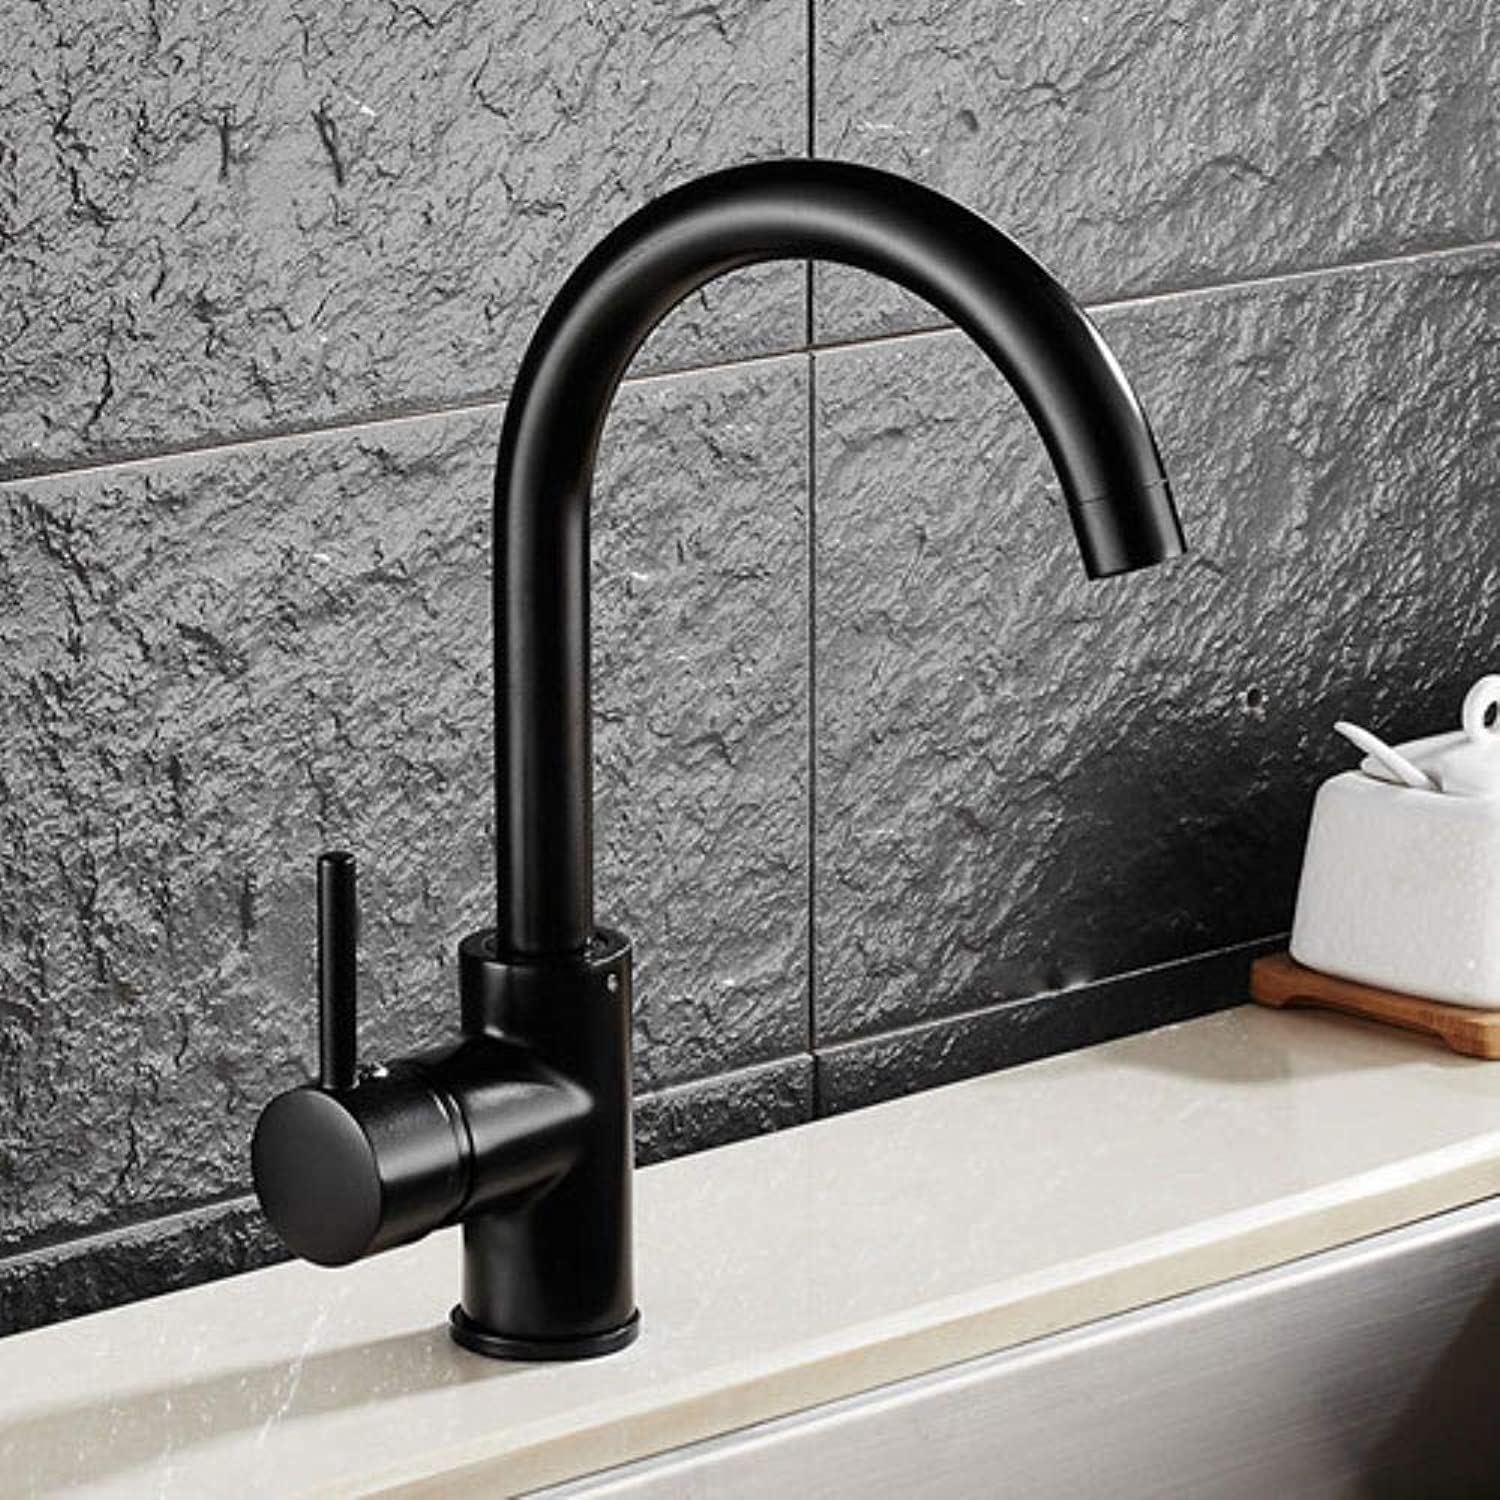 Kai&Guo Four Styles Chrome Brushed Kitchen Mixer Torneria Deck Mounted Black Kitchen Sink Water Faucet 8076 On, Black